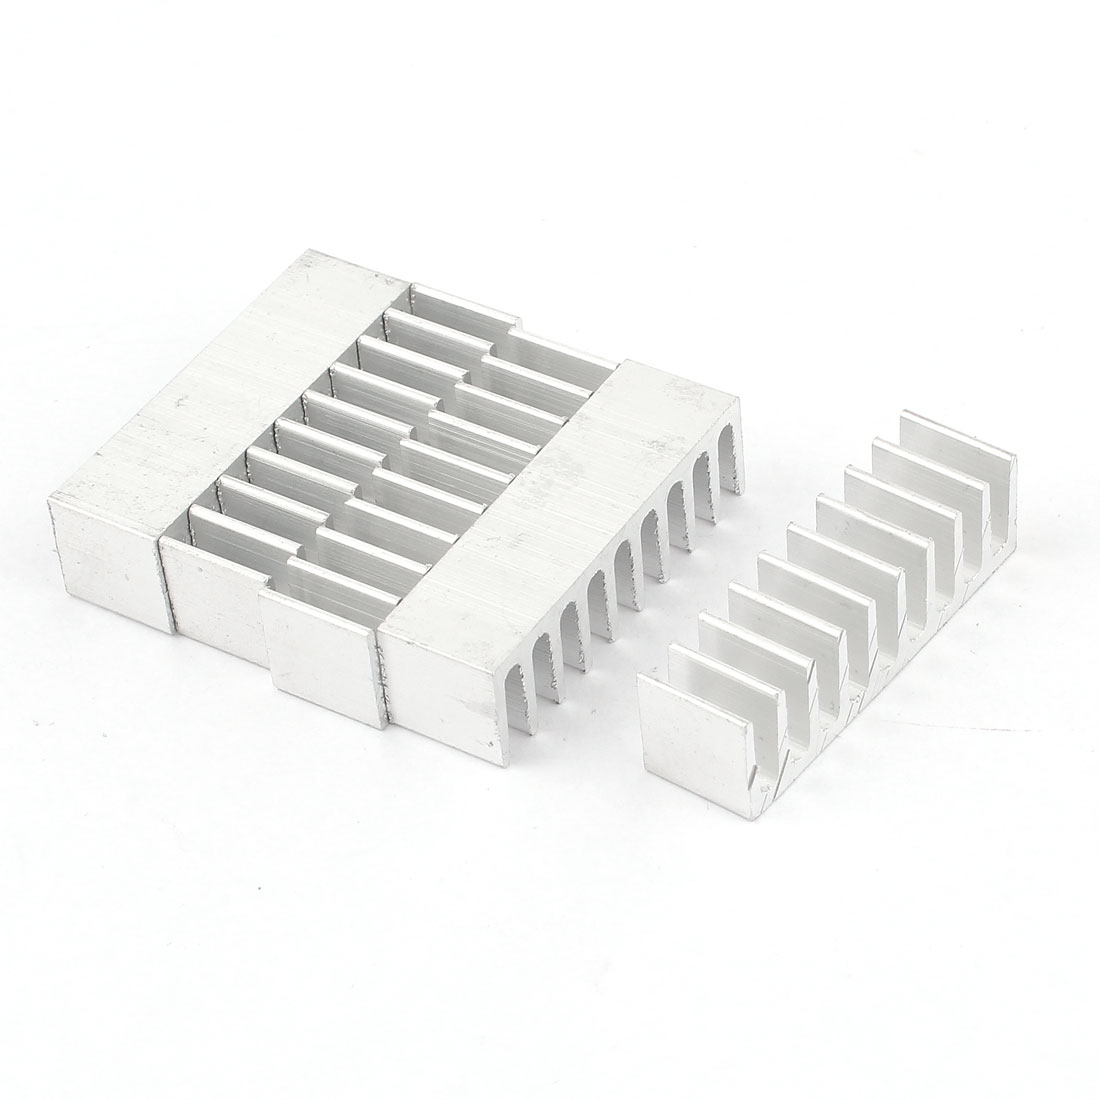 5 Pcs Silver Tone Aluminum Cooler Radiator Heat Sink Heatsink 35mm x 10mm x 10mm